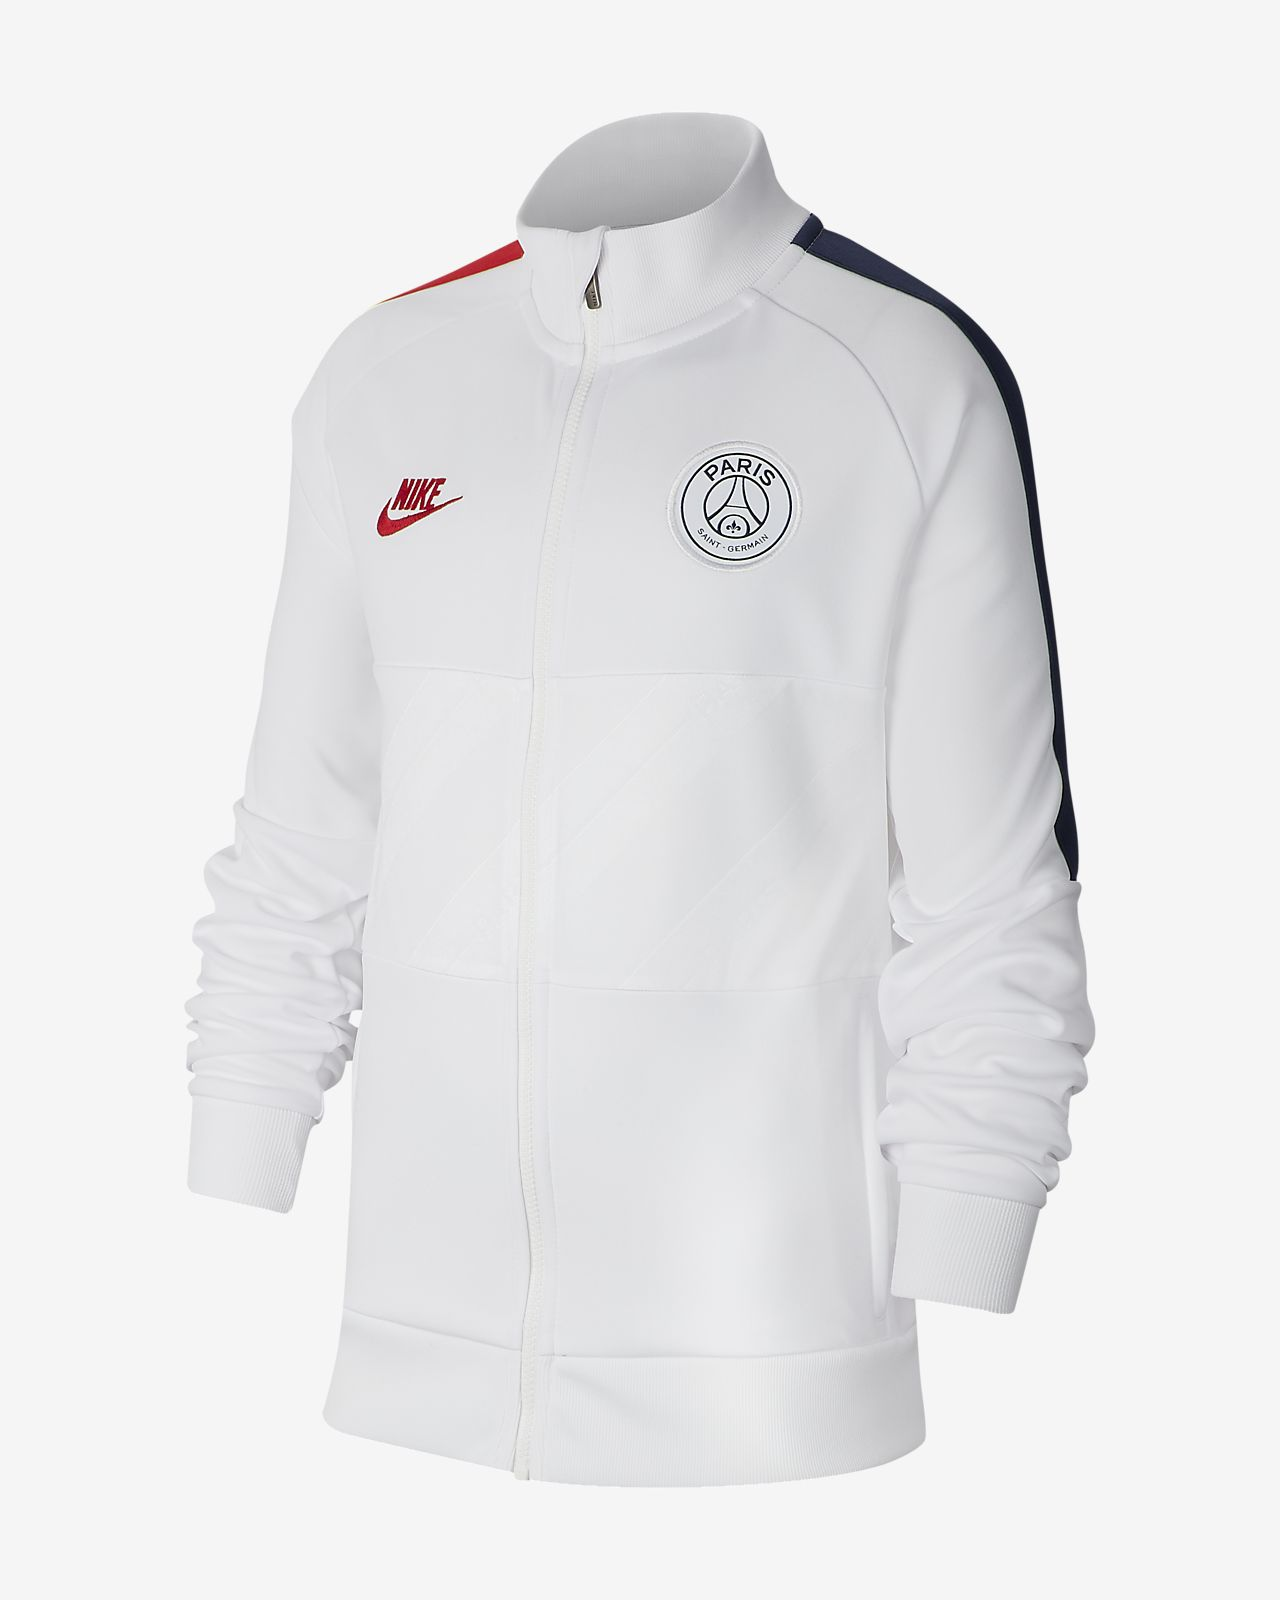 Veste de football Paris Saint-Germain pour Enfant